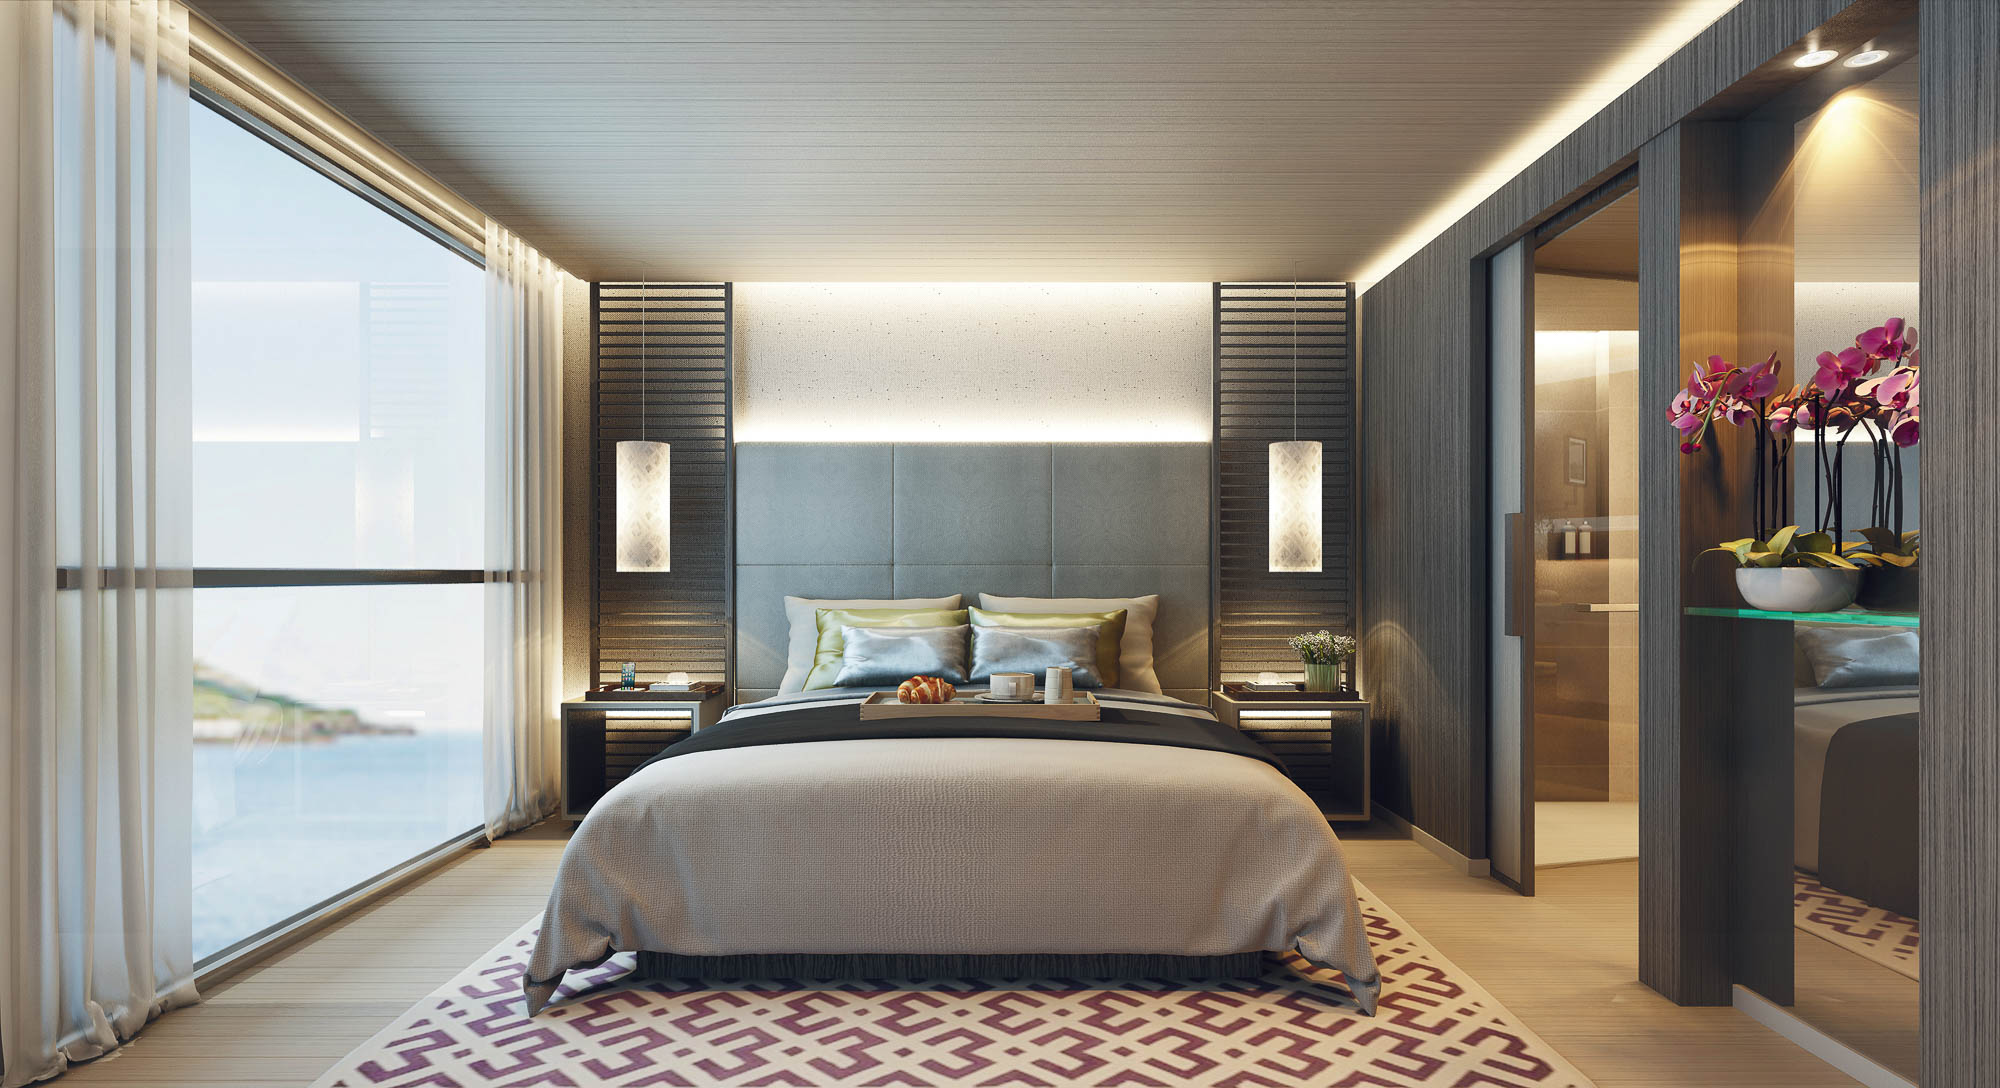 Scenic Aura's staterooms reflect the casual elegance Scenic is known for. Rendering courtesy Scenic